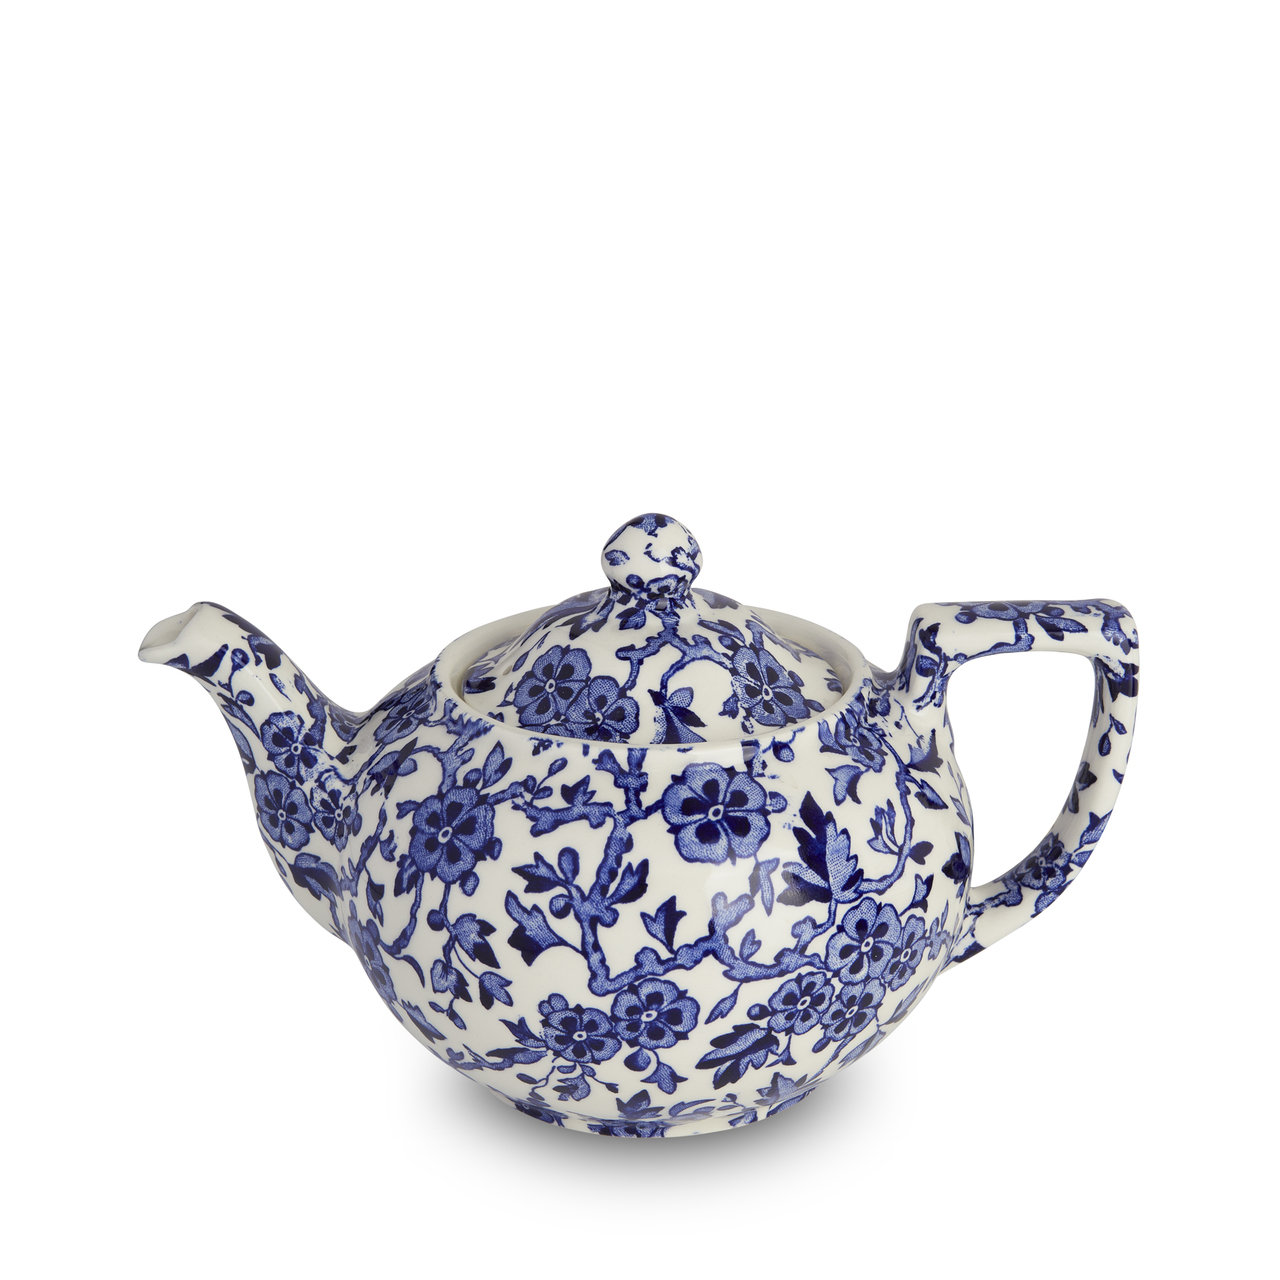 Burleigh Blue Arden | Beautiful china to adorn your tablescapes and add to your Sasha Nicholas wedding & gift registry